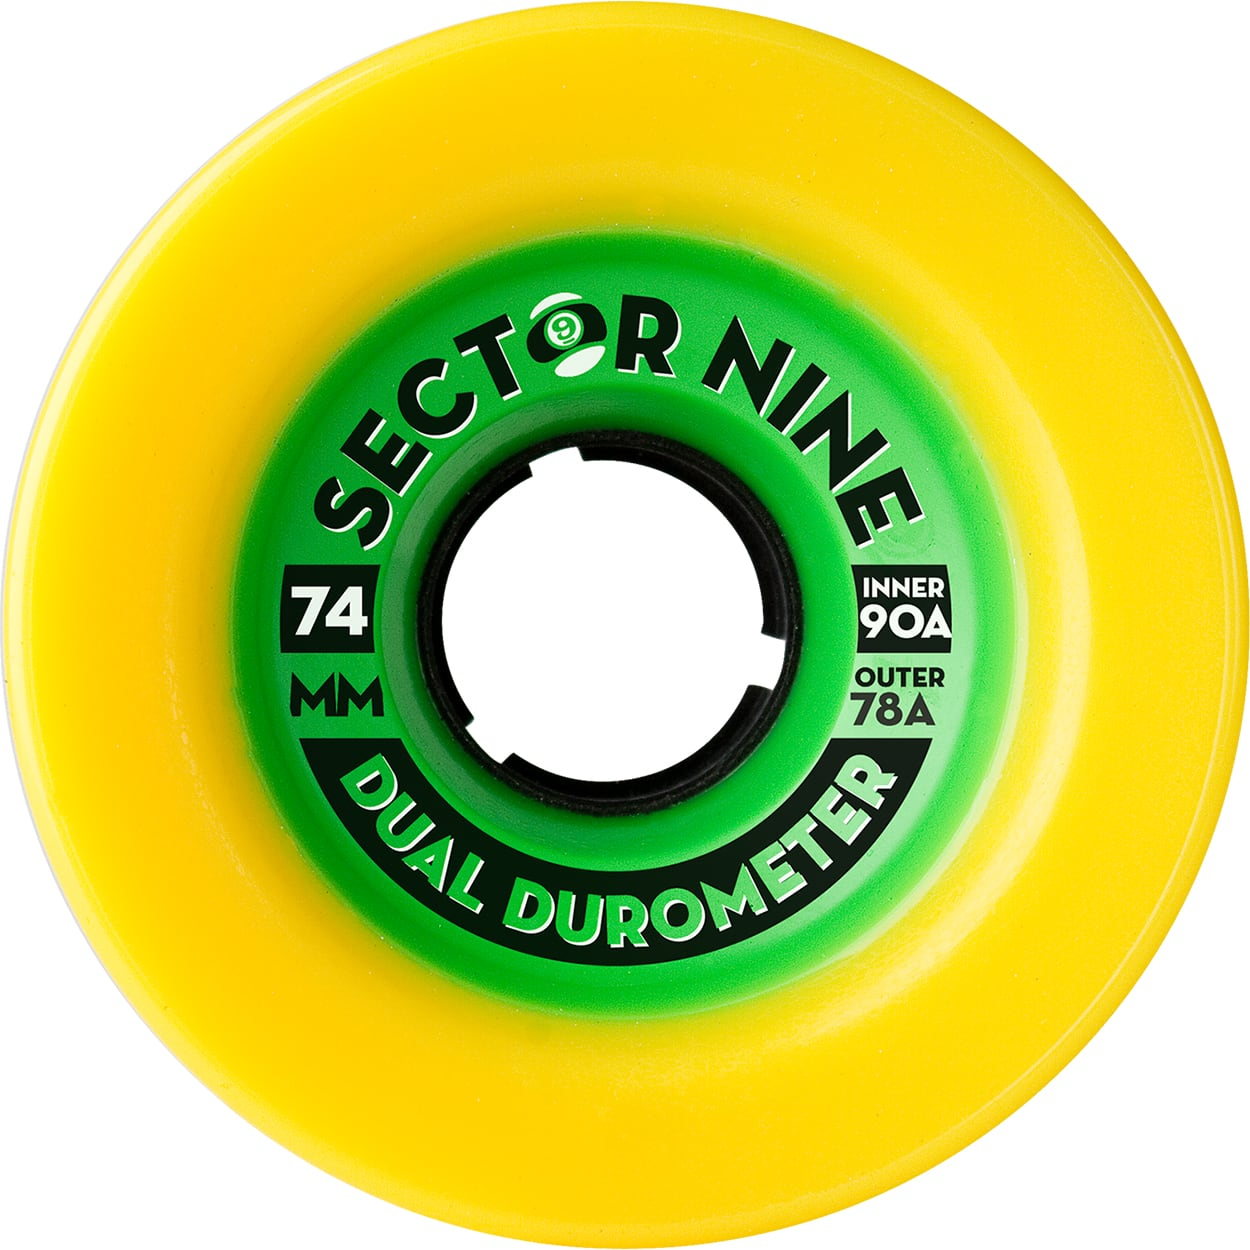 SECTOR 9 WHEELS | DUAL DUROMETER (74mm 78A)